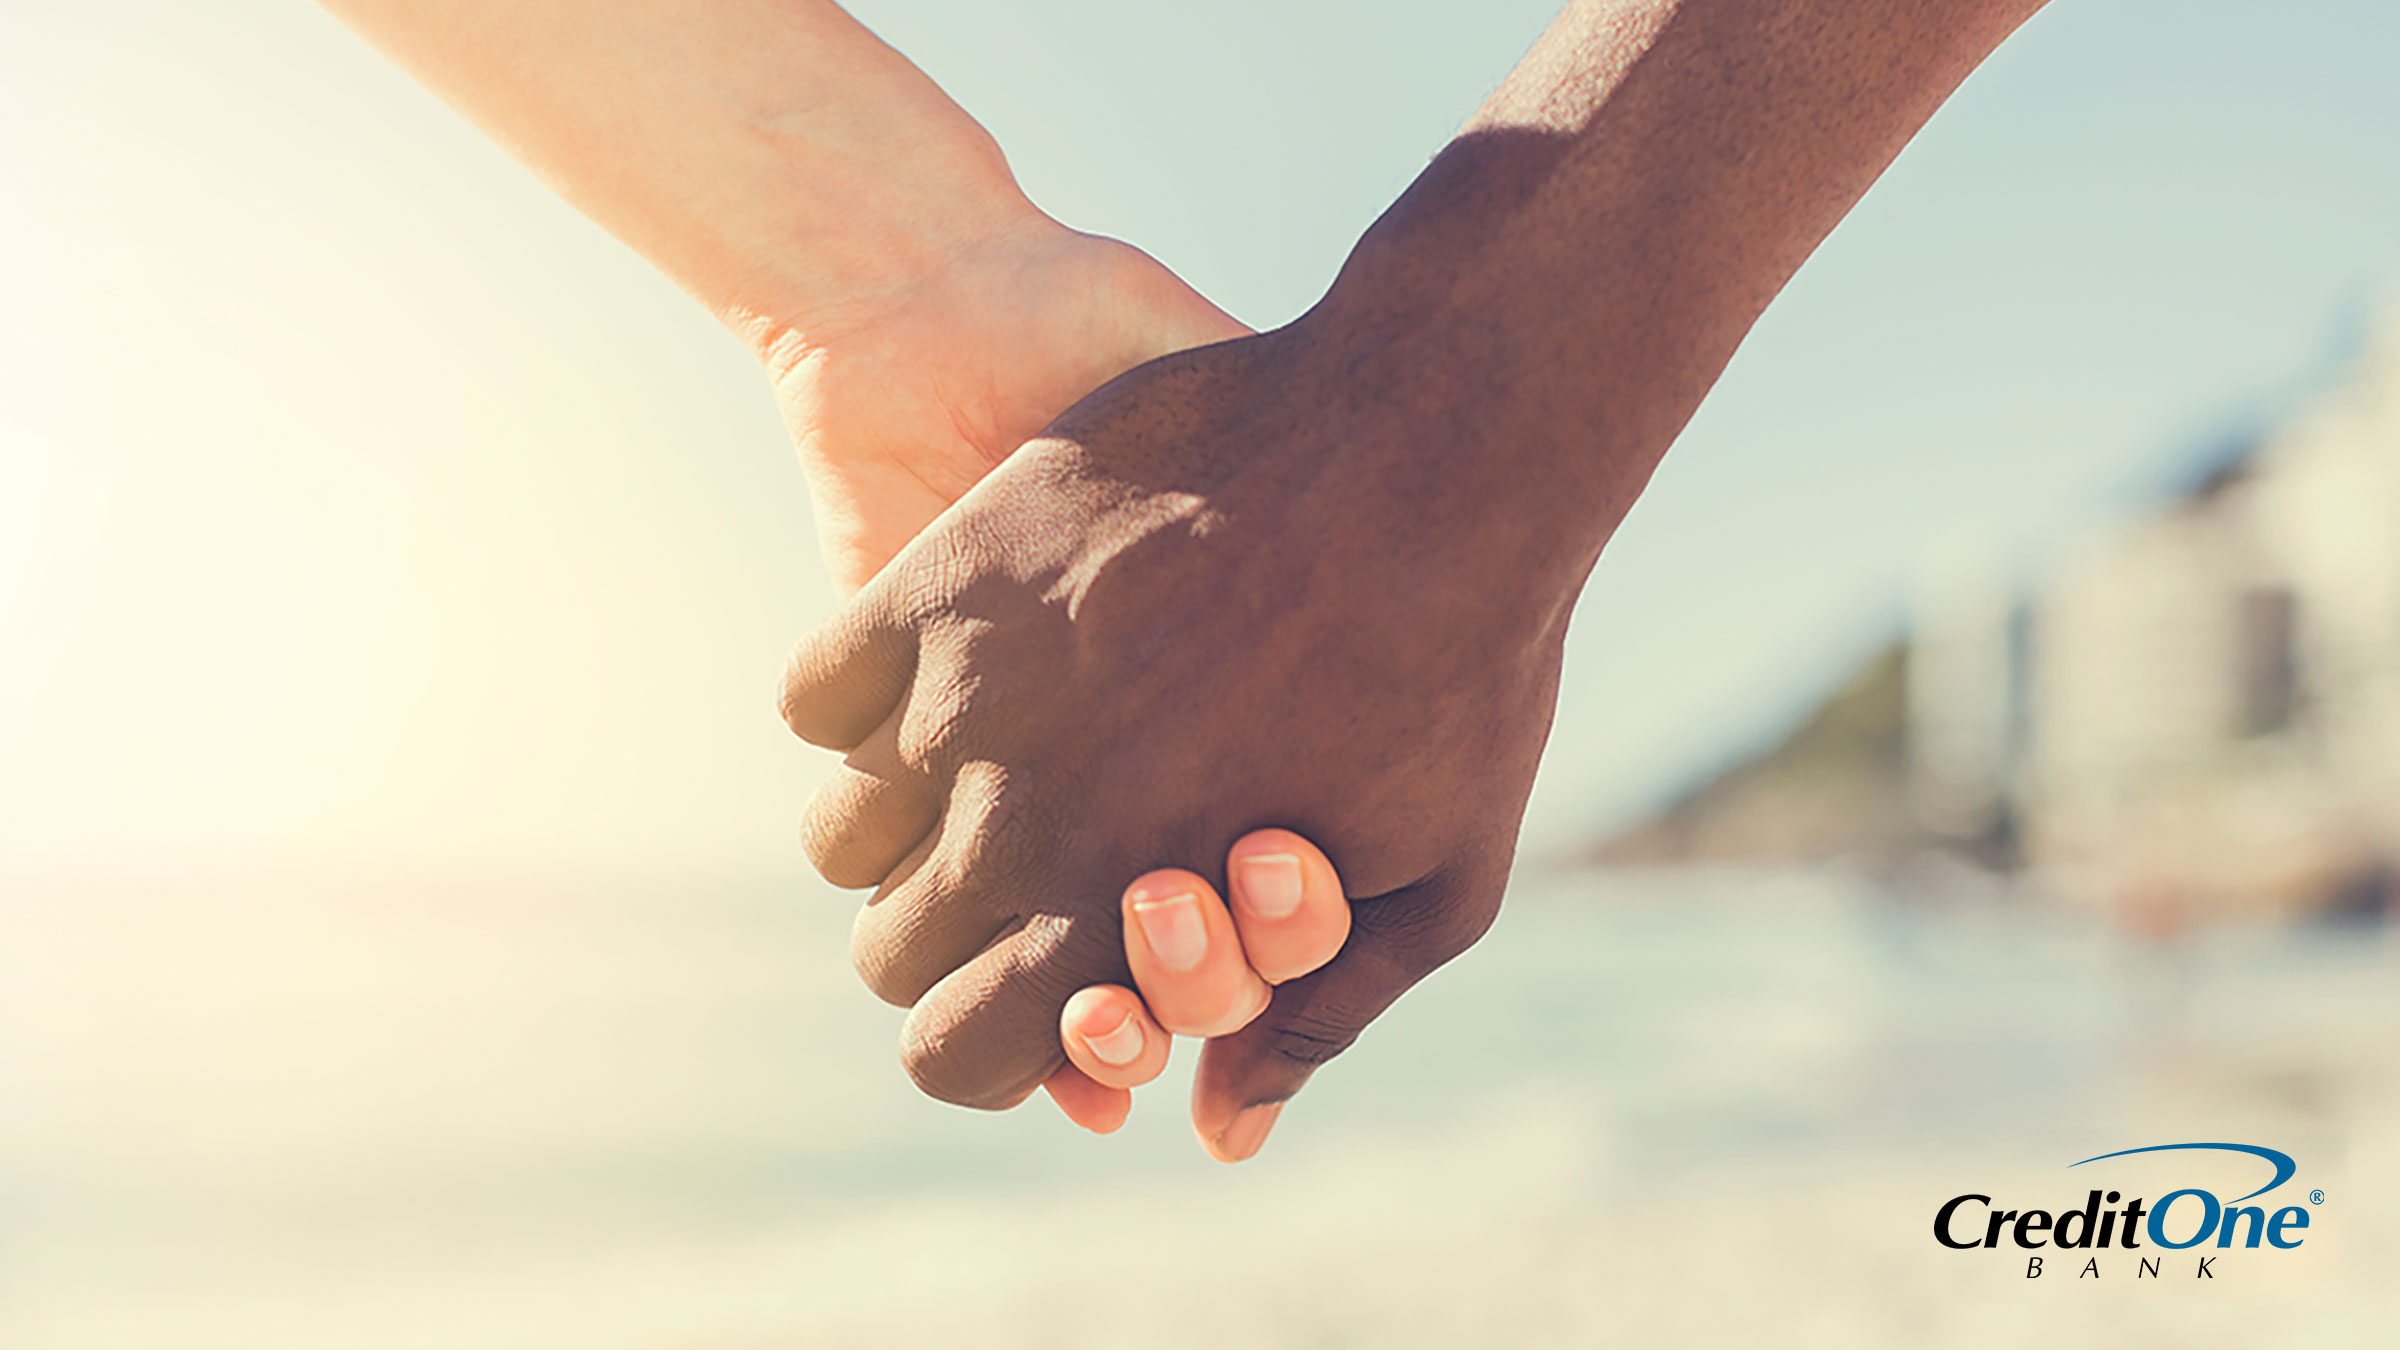 Two people holding hands demonstrating how income and credit come together